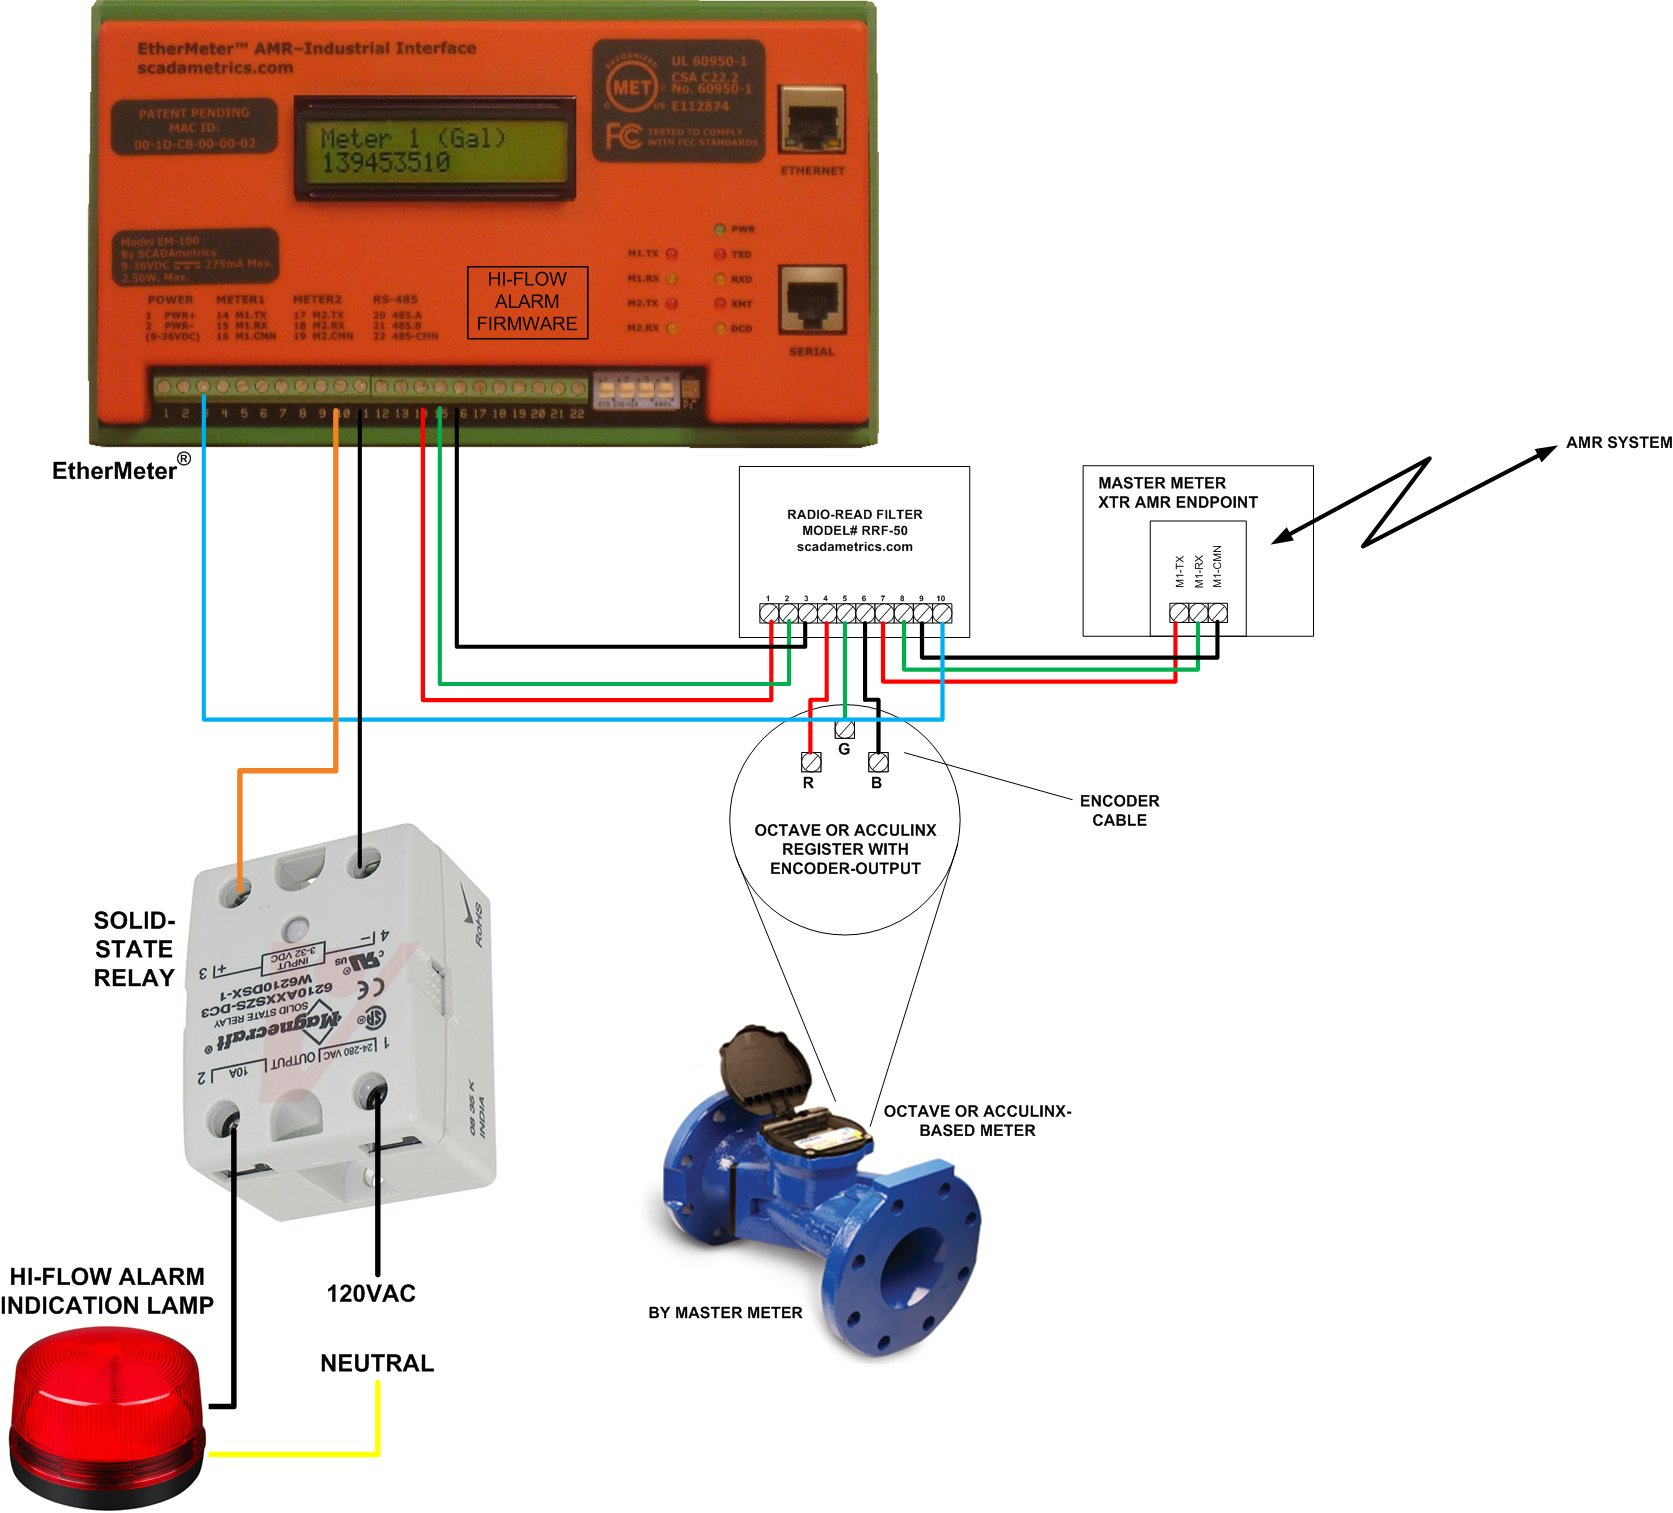 hight resolution of gas pulse meter wiring diagram wiring diagrams water flow meter wiring diagrams